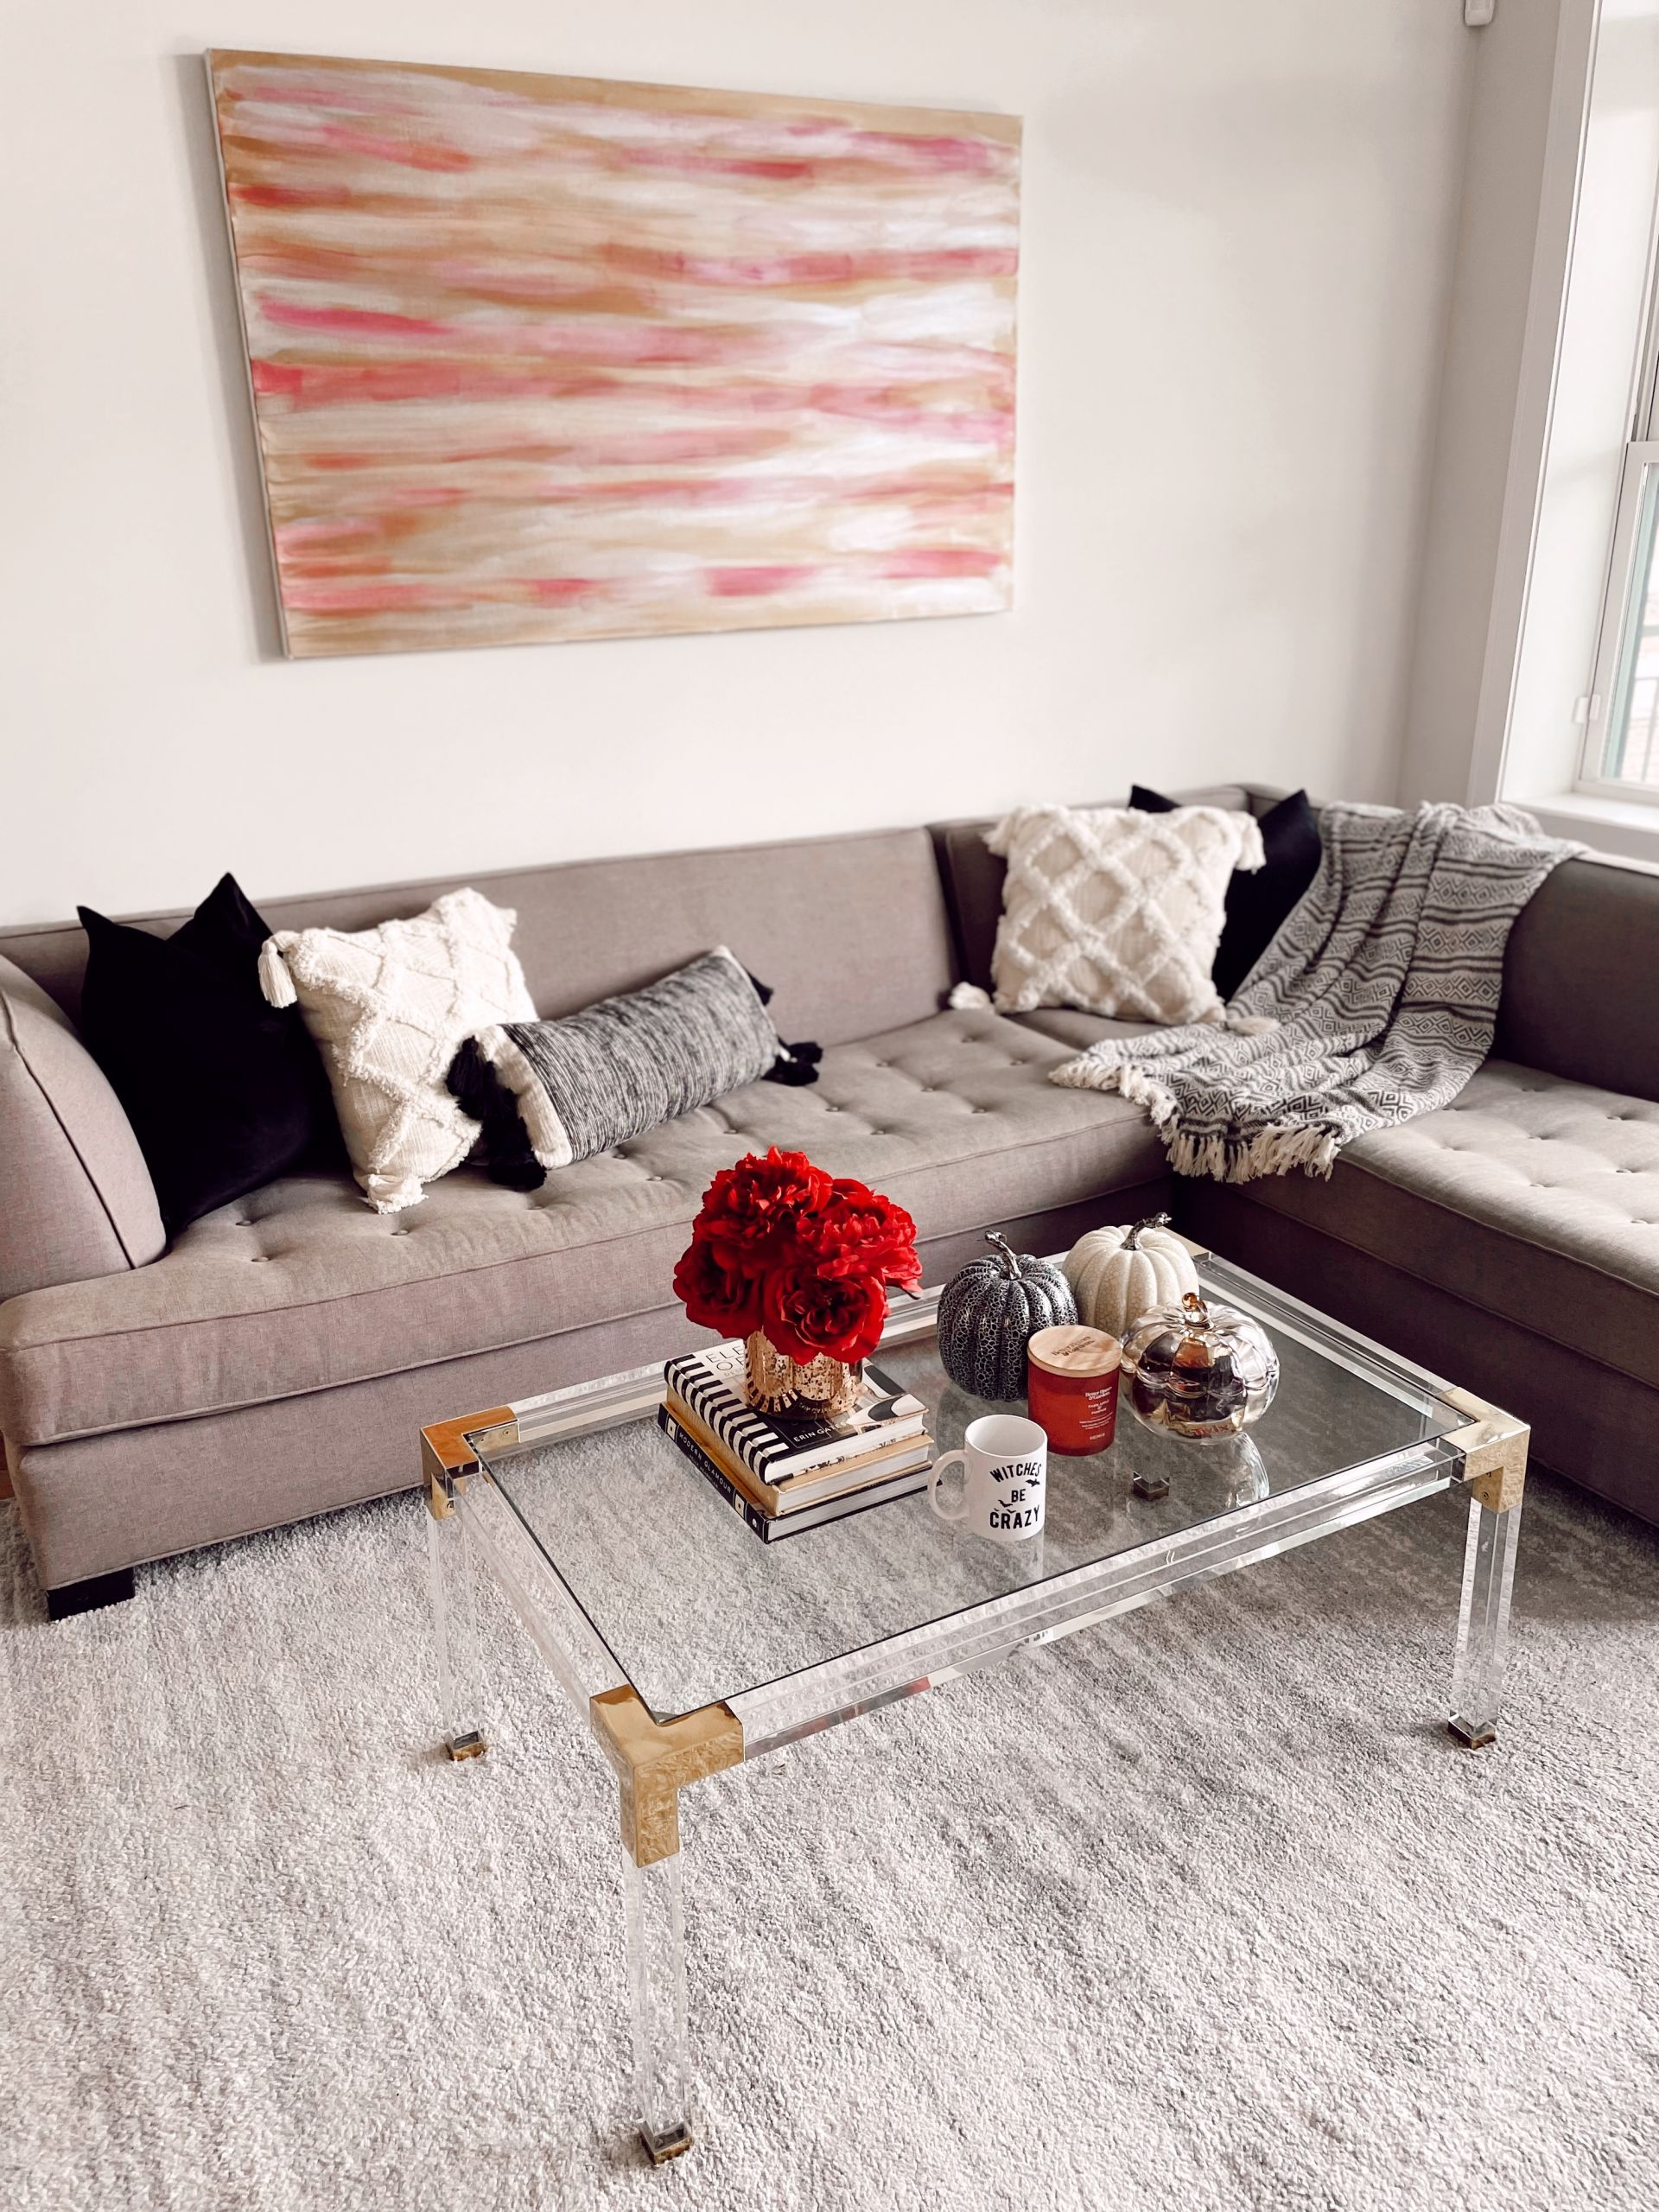 cozy fall living room, cozy fall decor, fall home decor, subtle Subtle Touches of Fall to your Home, home decor inspiration, fall home inspiration, black and white fall decor, glam fall decor, neutralfall decor, pretty pumpkindecor, fall decor ideas, pretty fall decor, Red Soles and Red Wine, Jennifer Worman